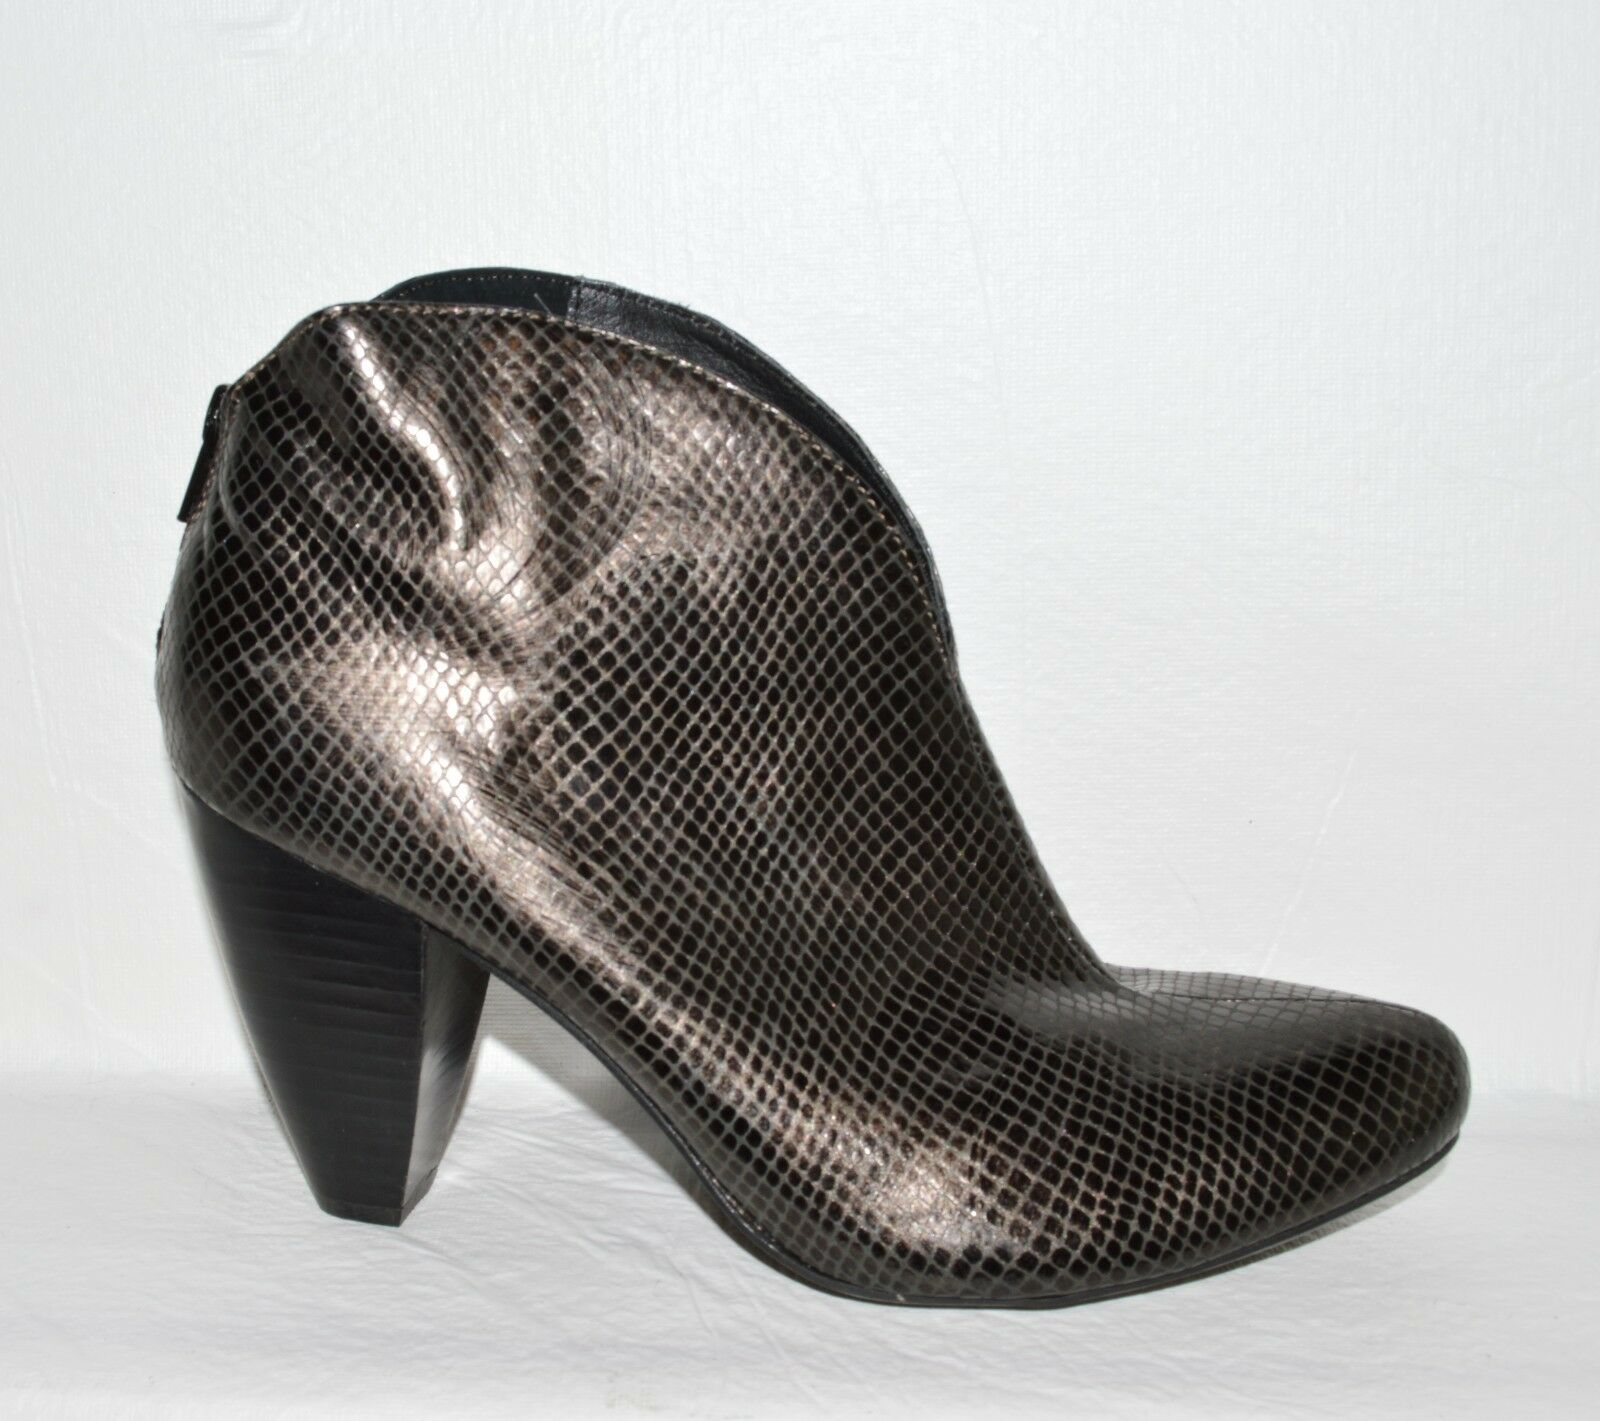 BORN CROWN NEW SZ 10 M 42 SNAKE PRINT DARK GRAY LEATHER ANKLE BOOTS BOOTIES